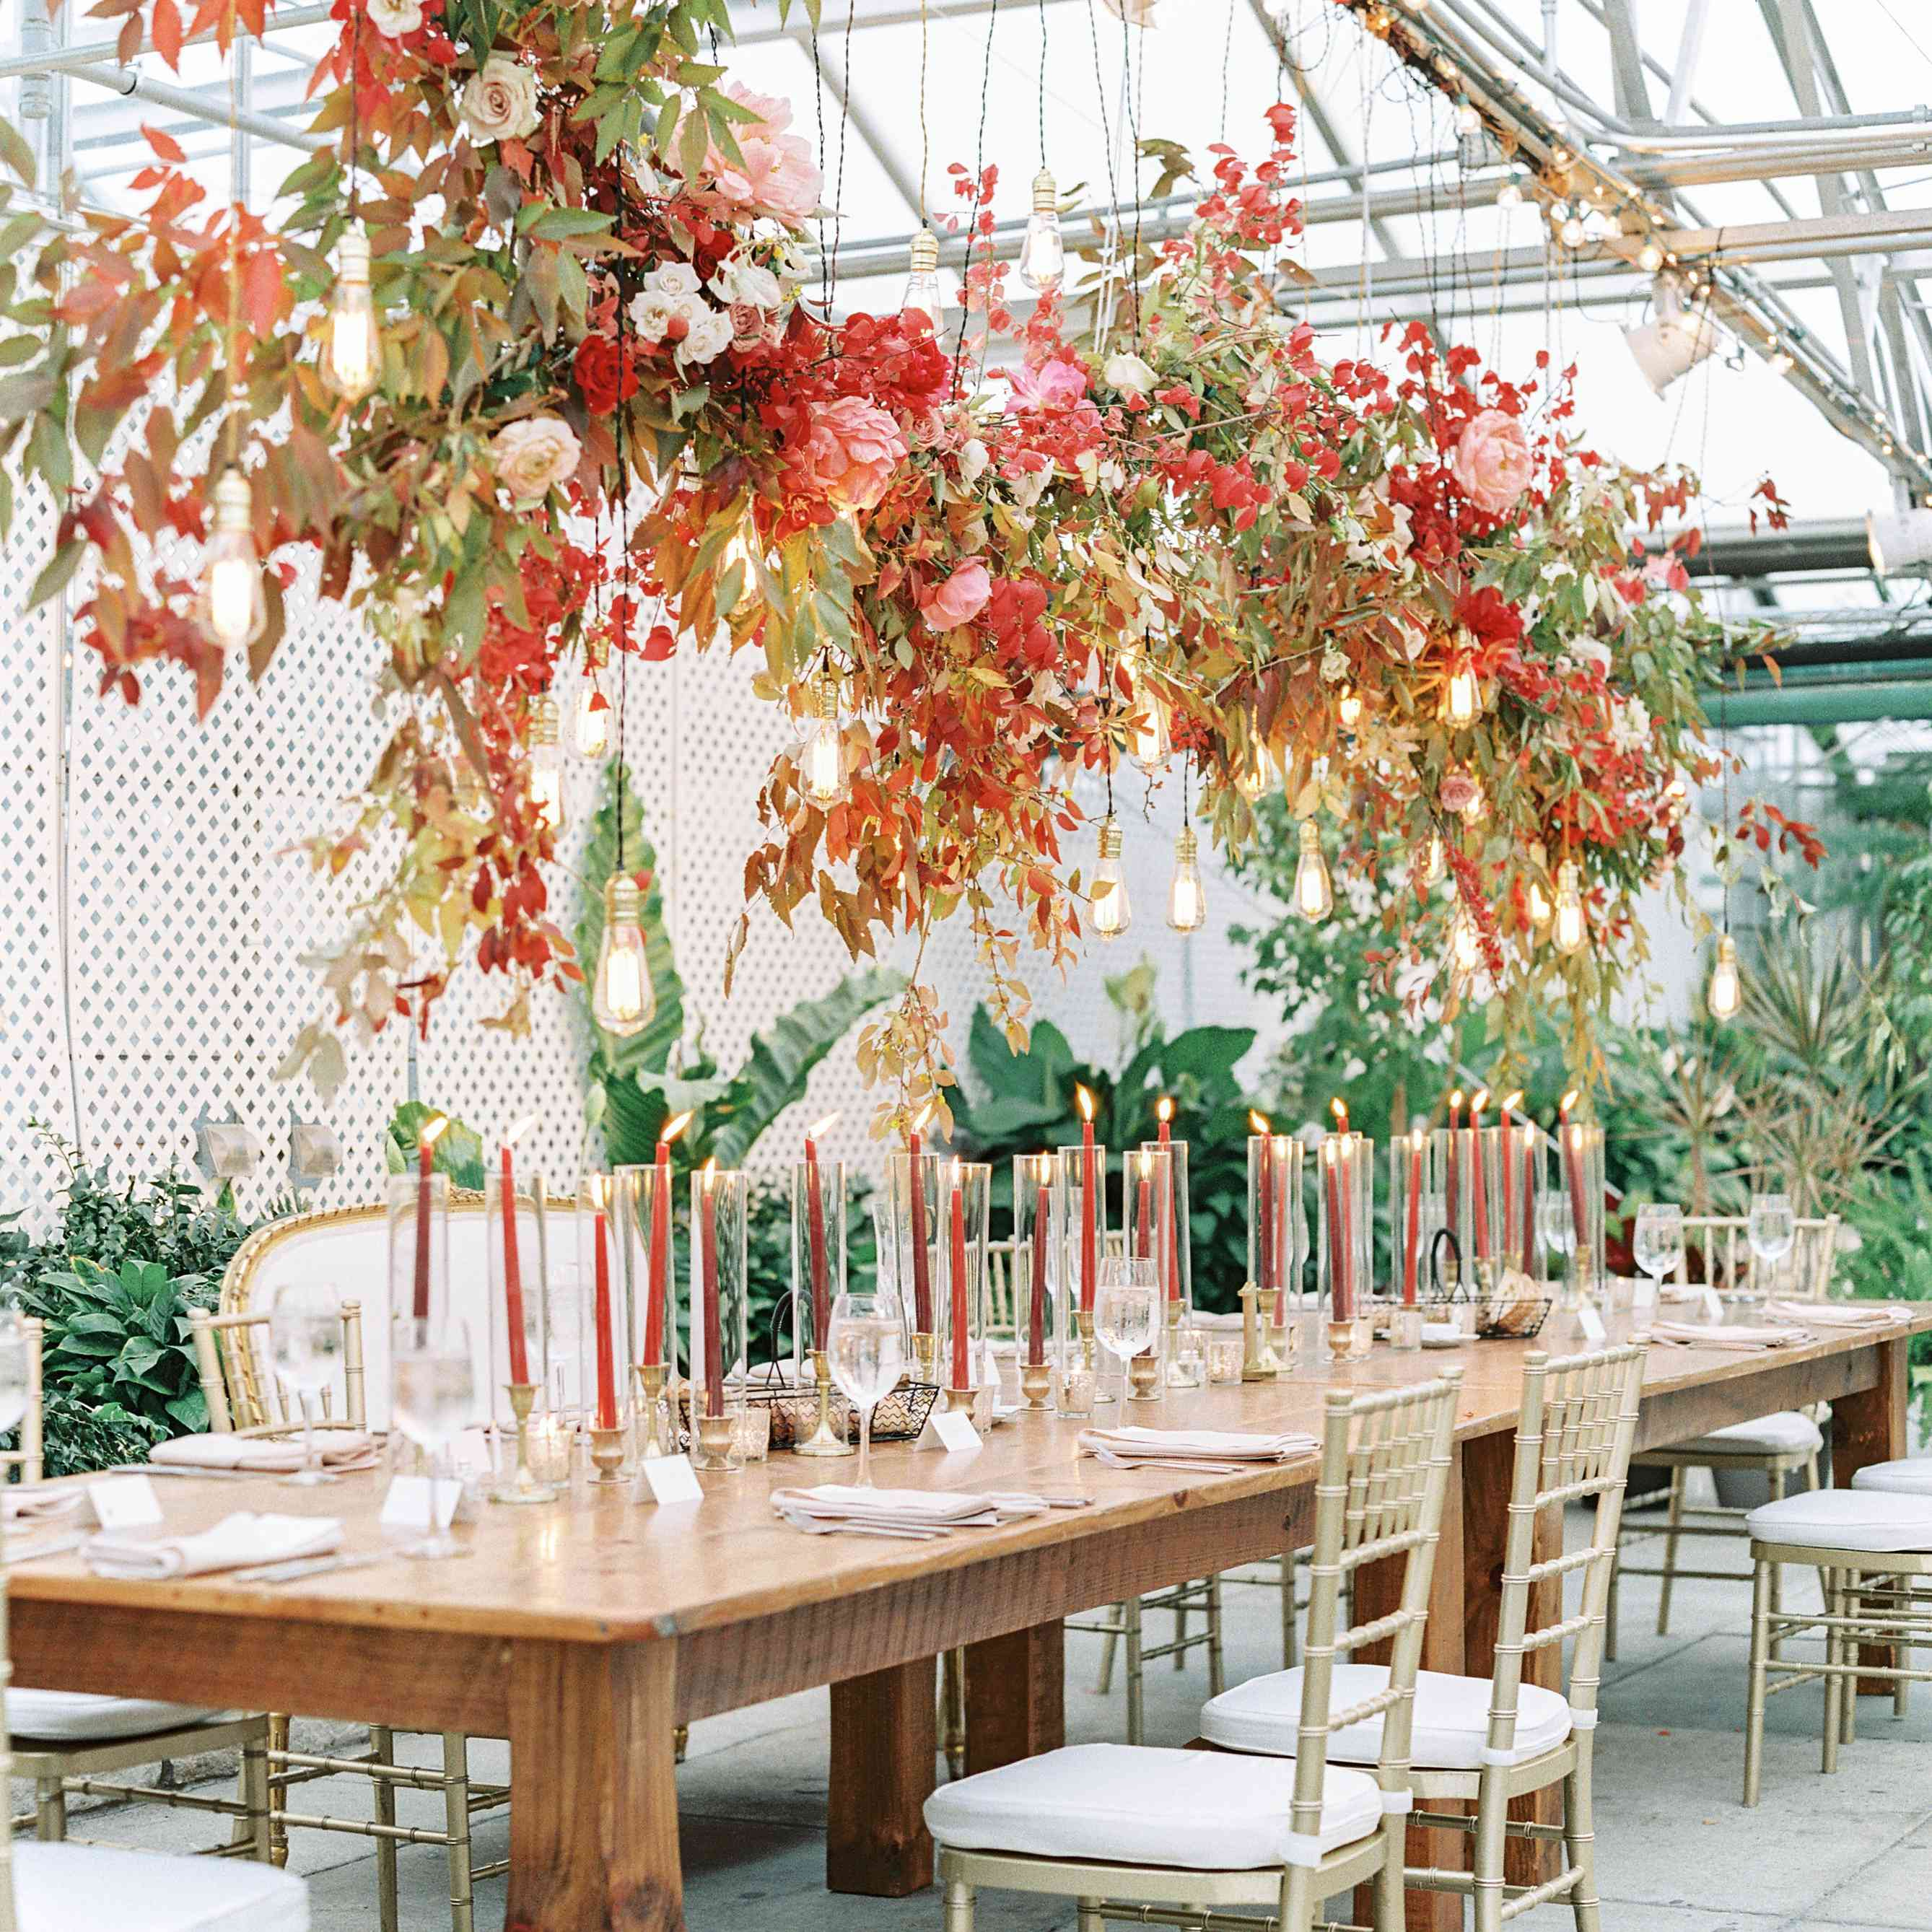 Floral and light bulb installation above wedding reception seating